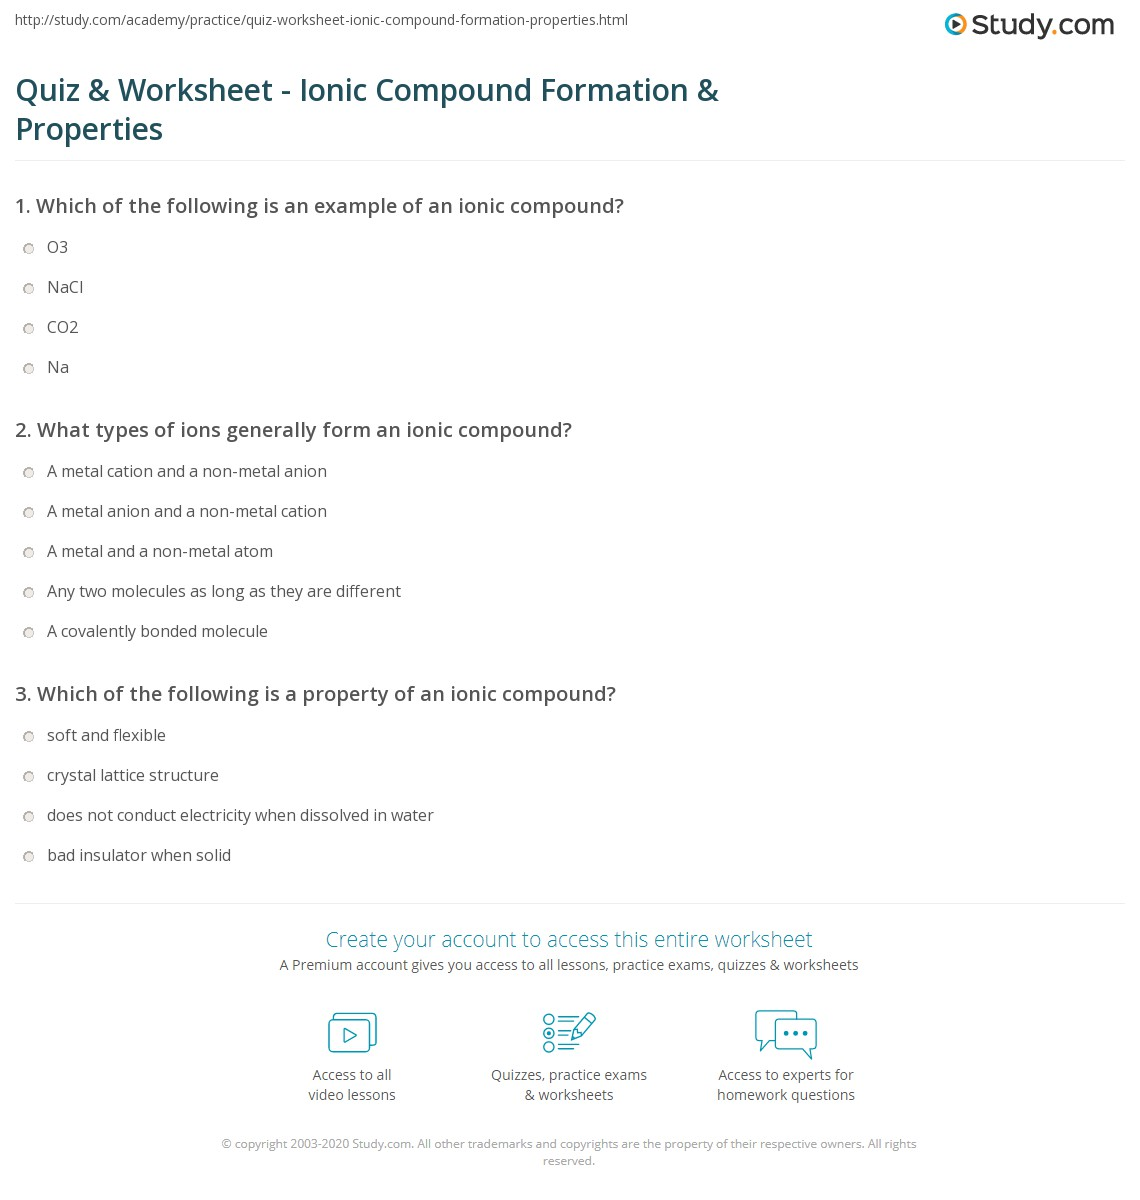 Quiz & Worksheet - Ionic Compound Formation & Properties | Study.com